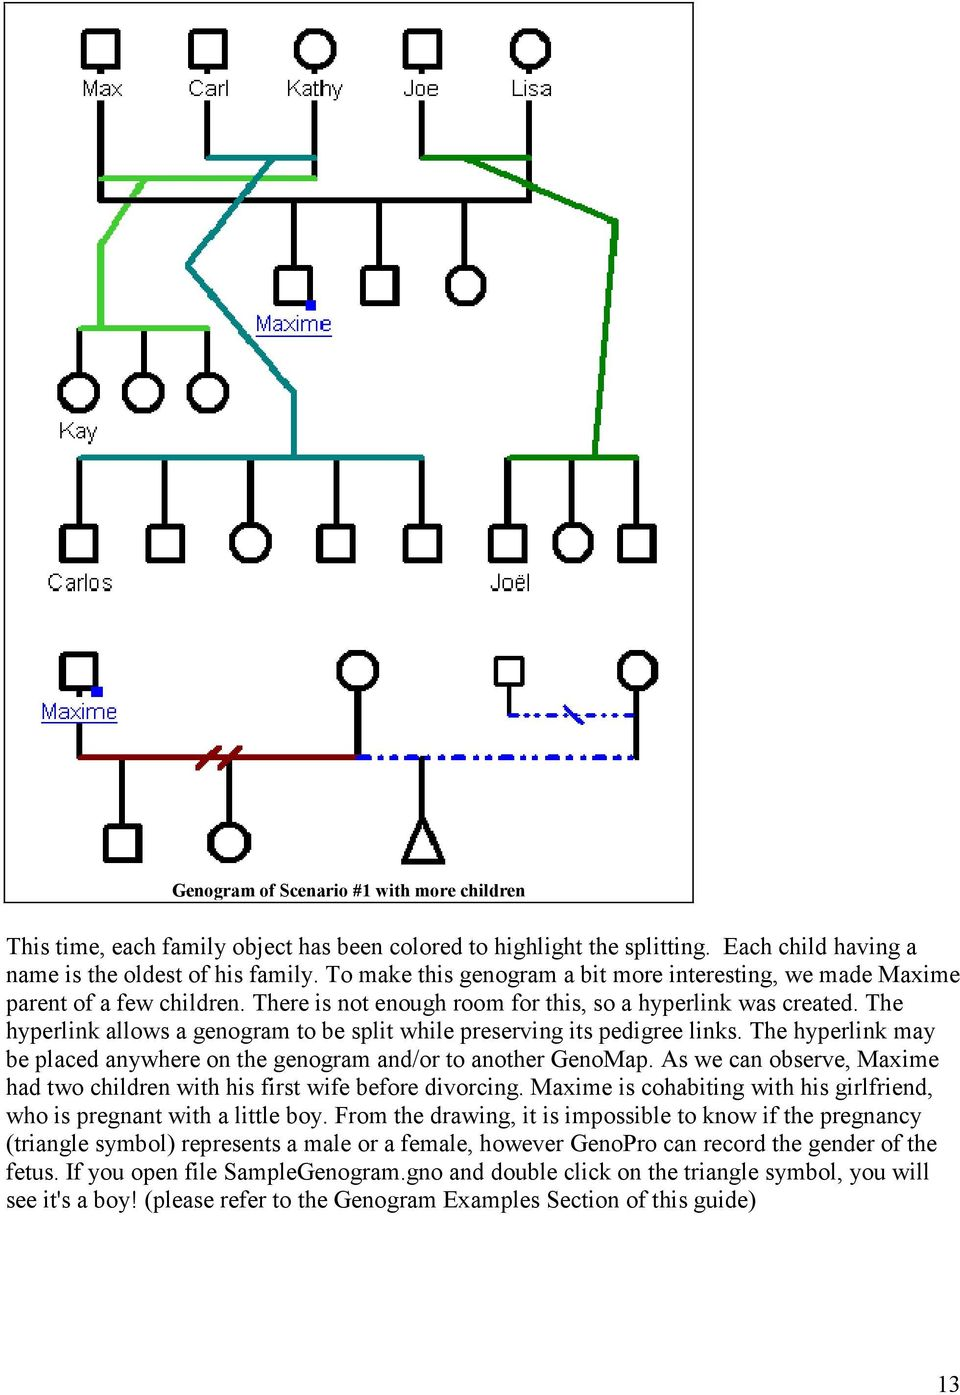 Genogram guide helpful hints to using genopro pdf the hyperlink allows a genogram to be split while preserving its pedigree links the hyperlink biocorpaavc Image collections